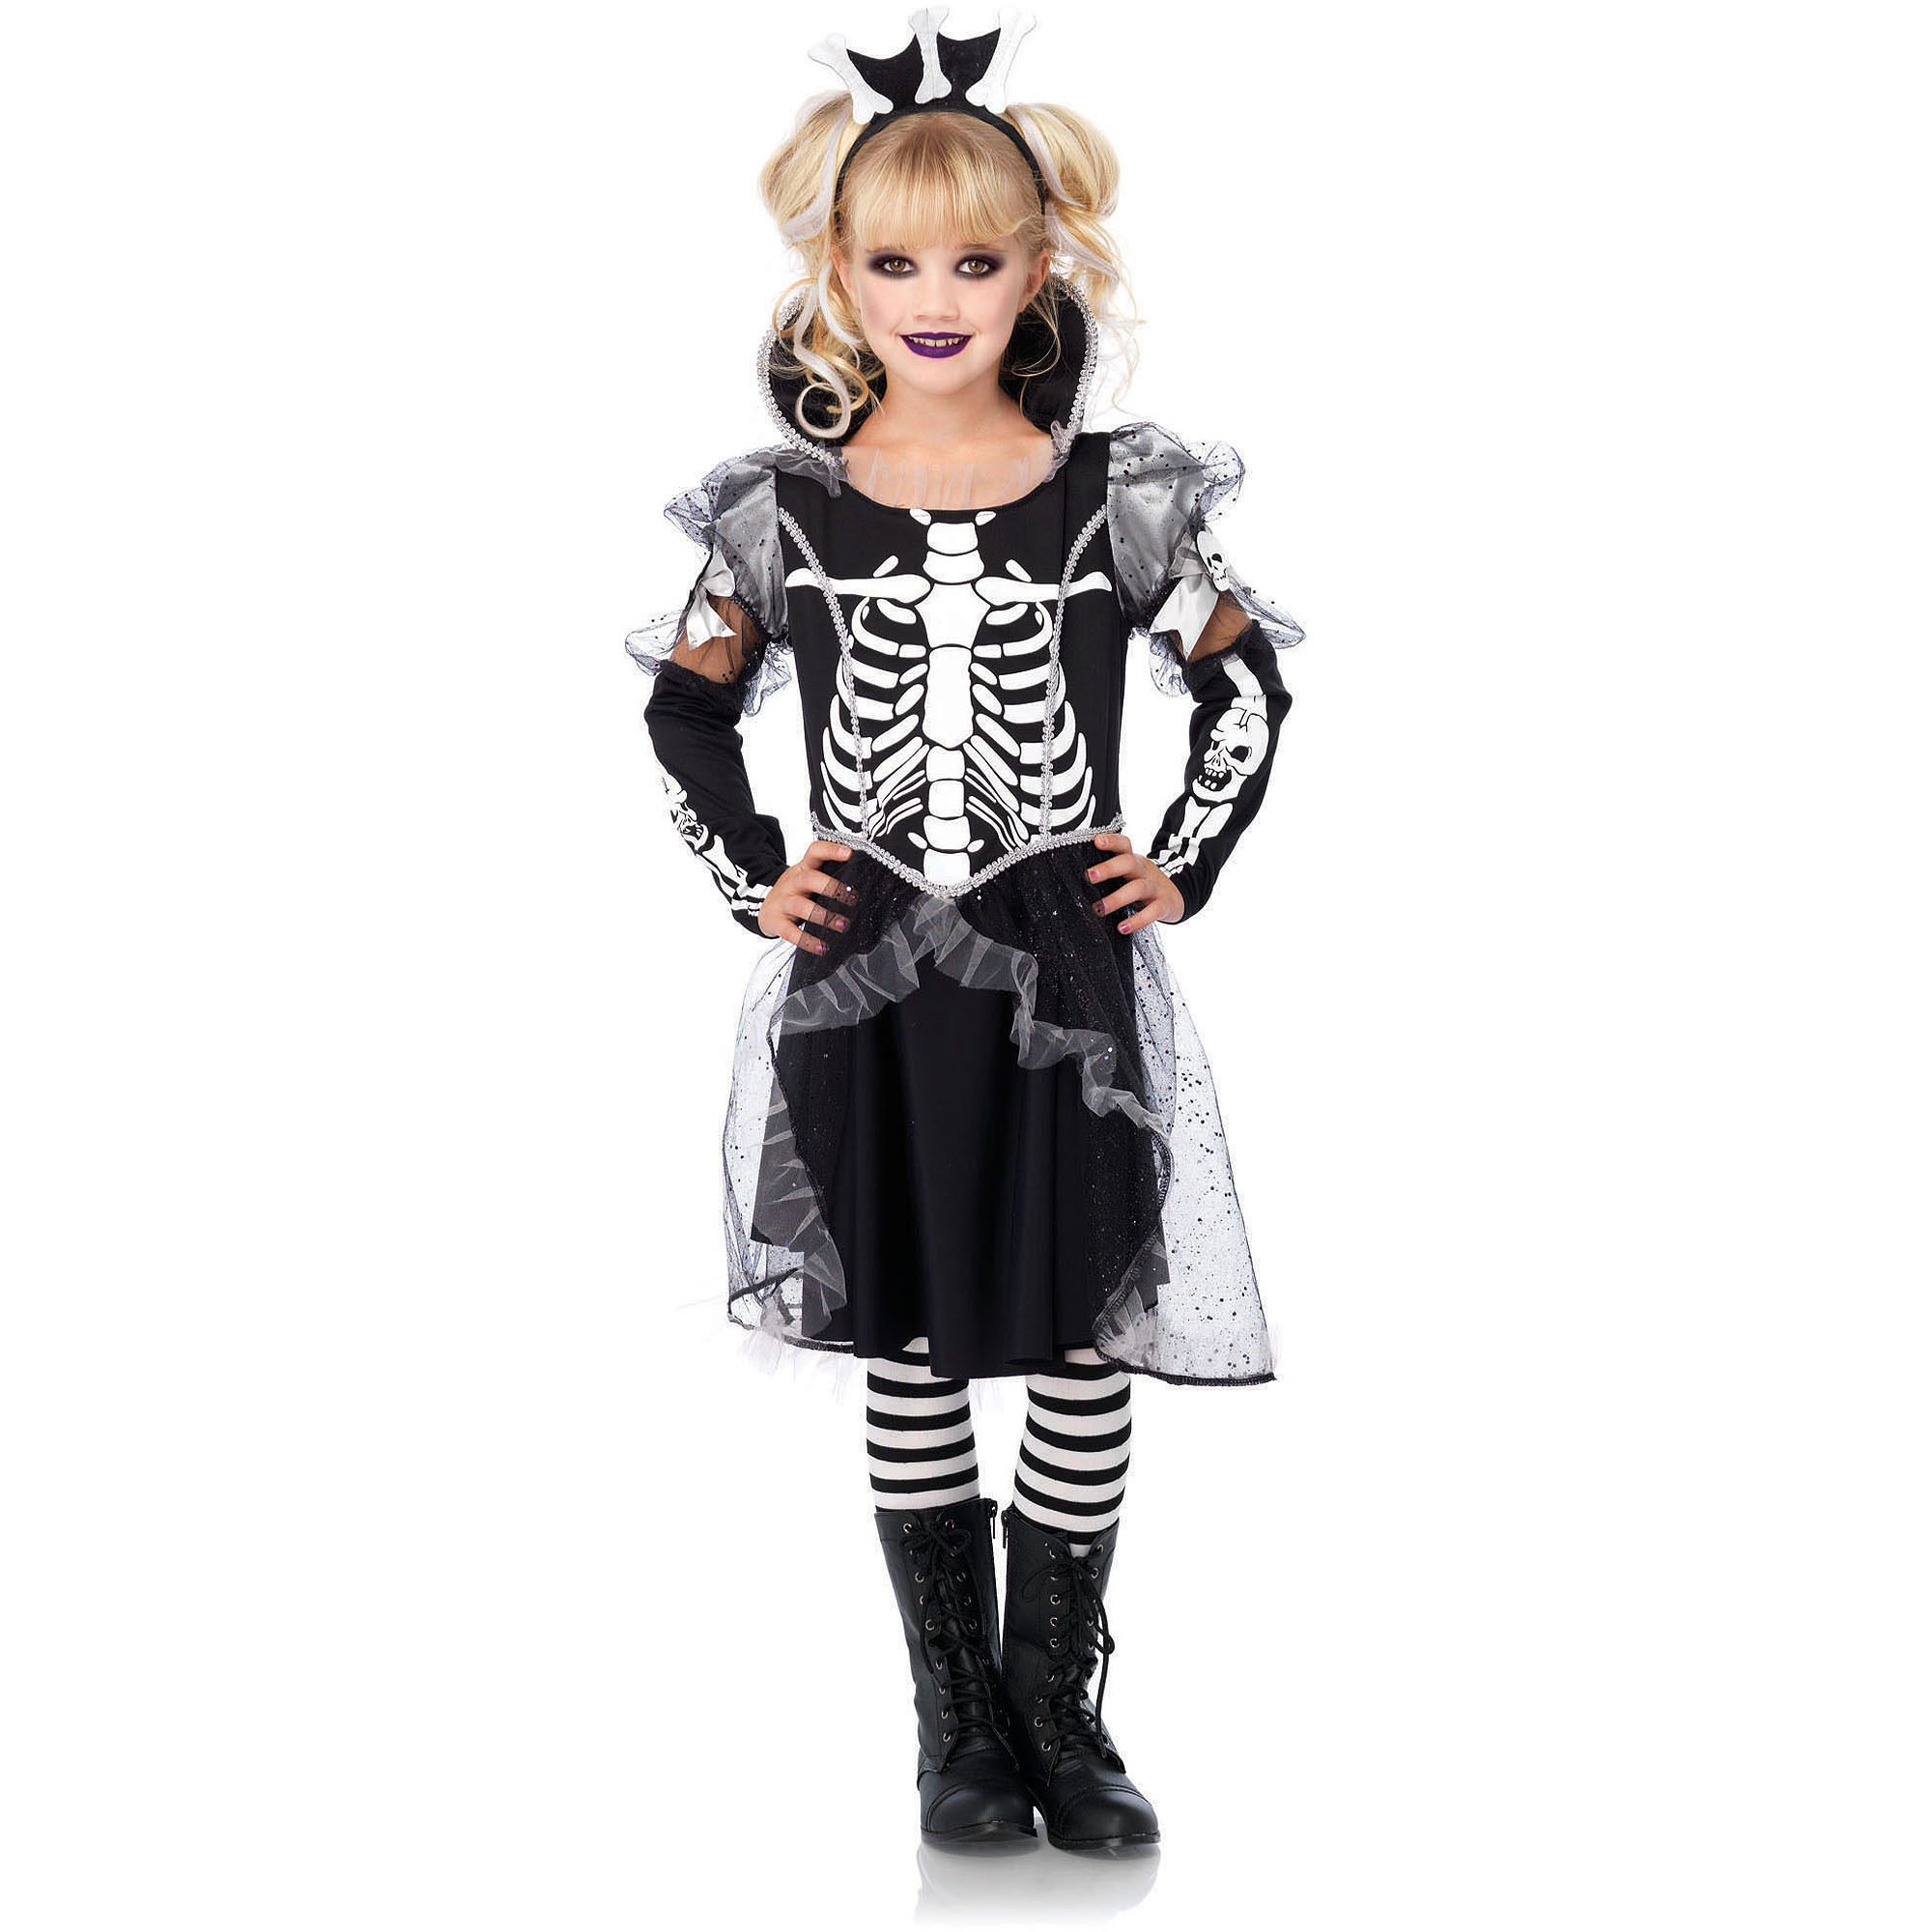 Leg Avenue Skeleton Princess Child Halloween Costume, Size M